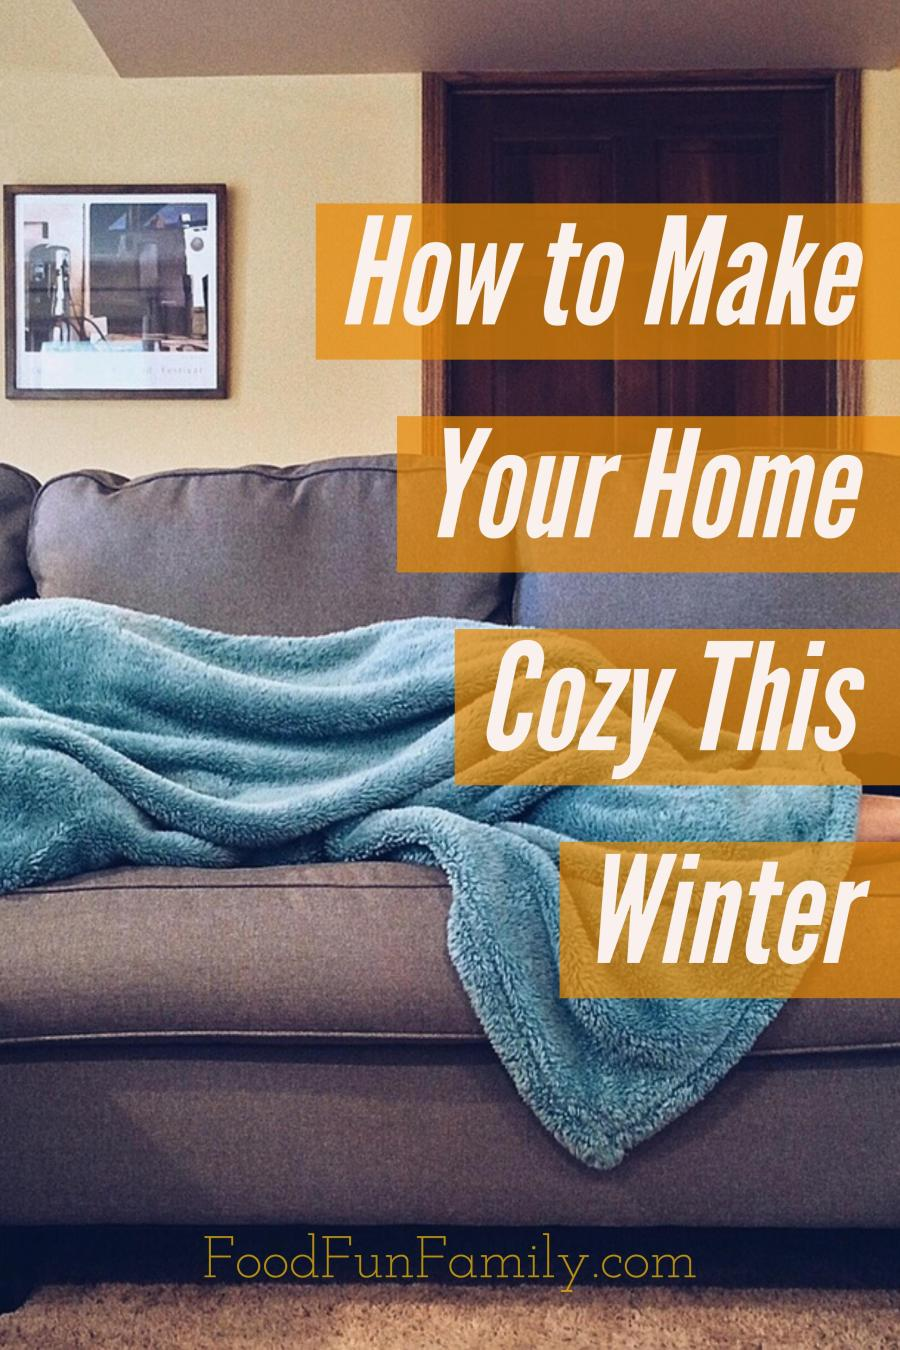 How to Make Your Home Cozy This Winter